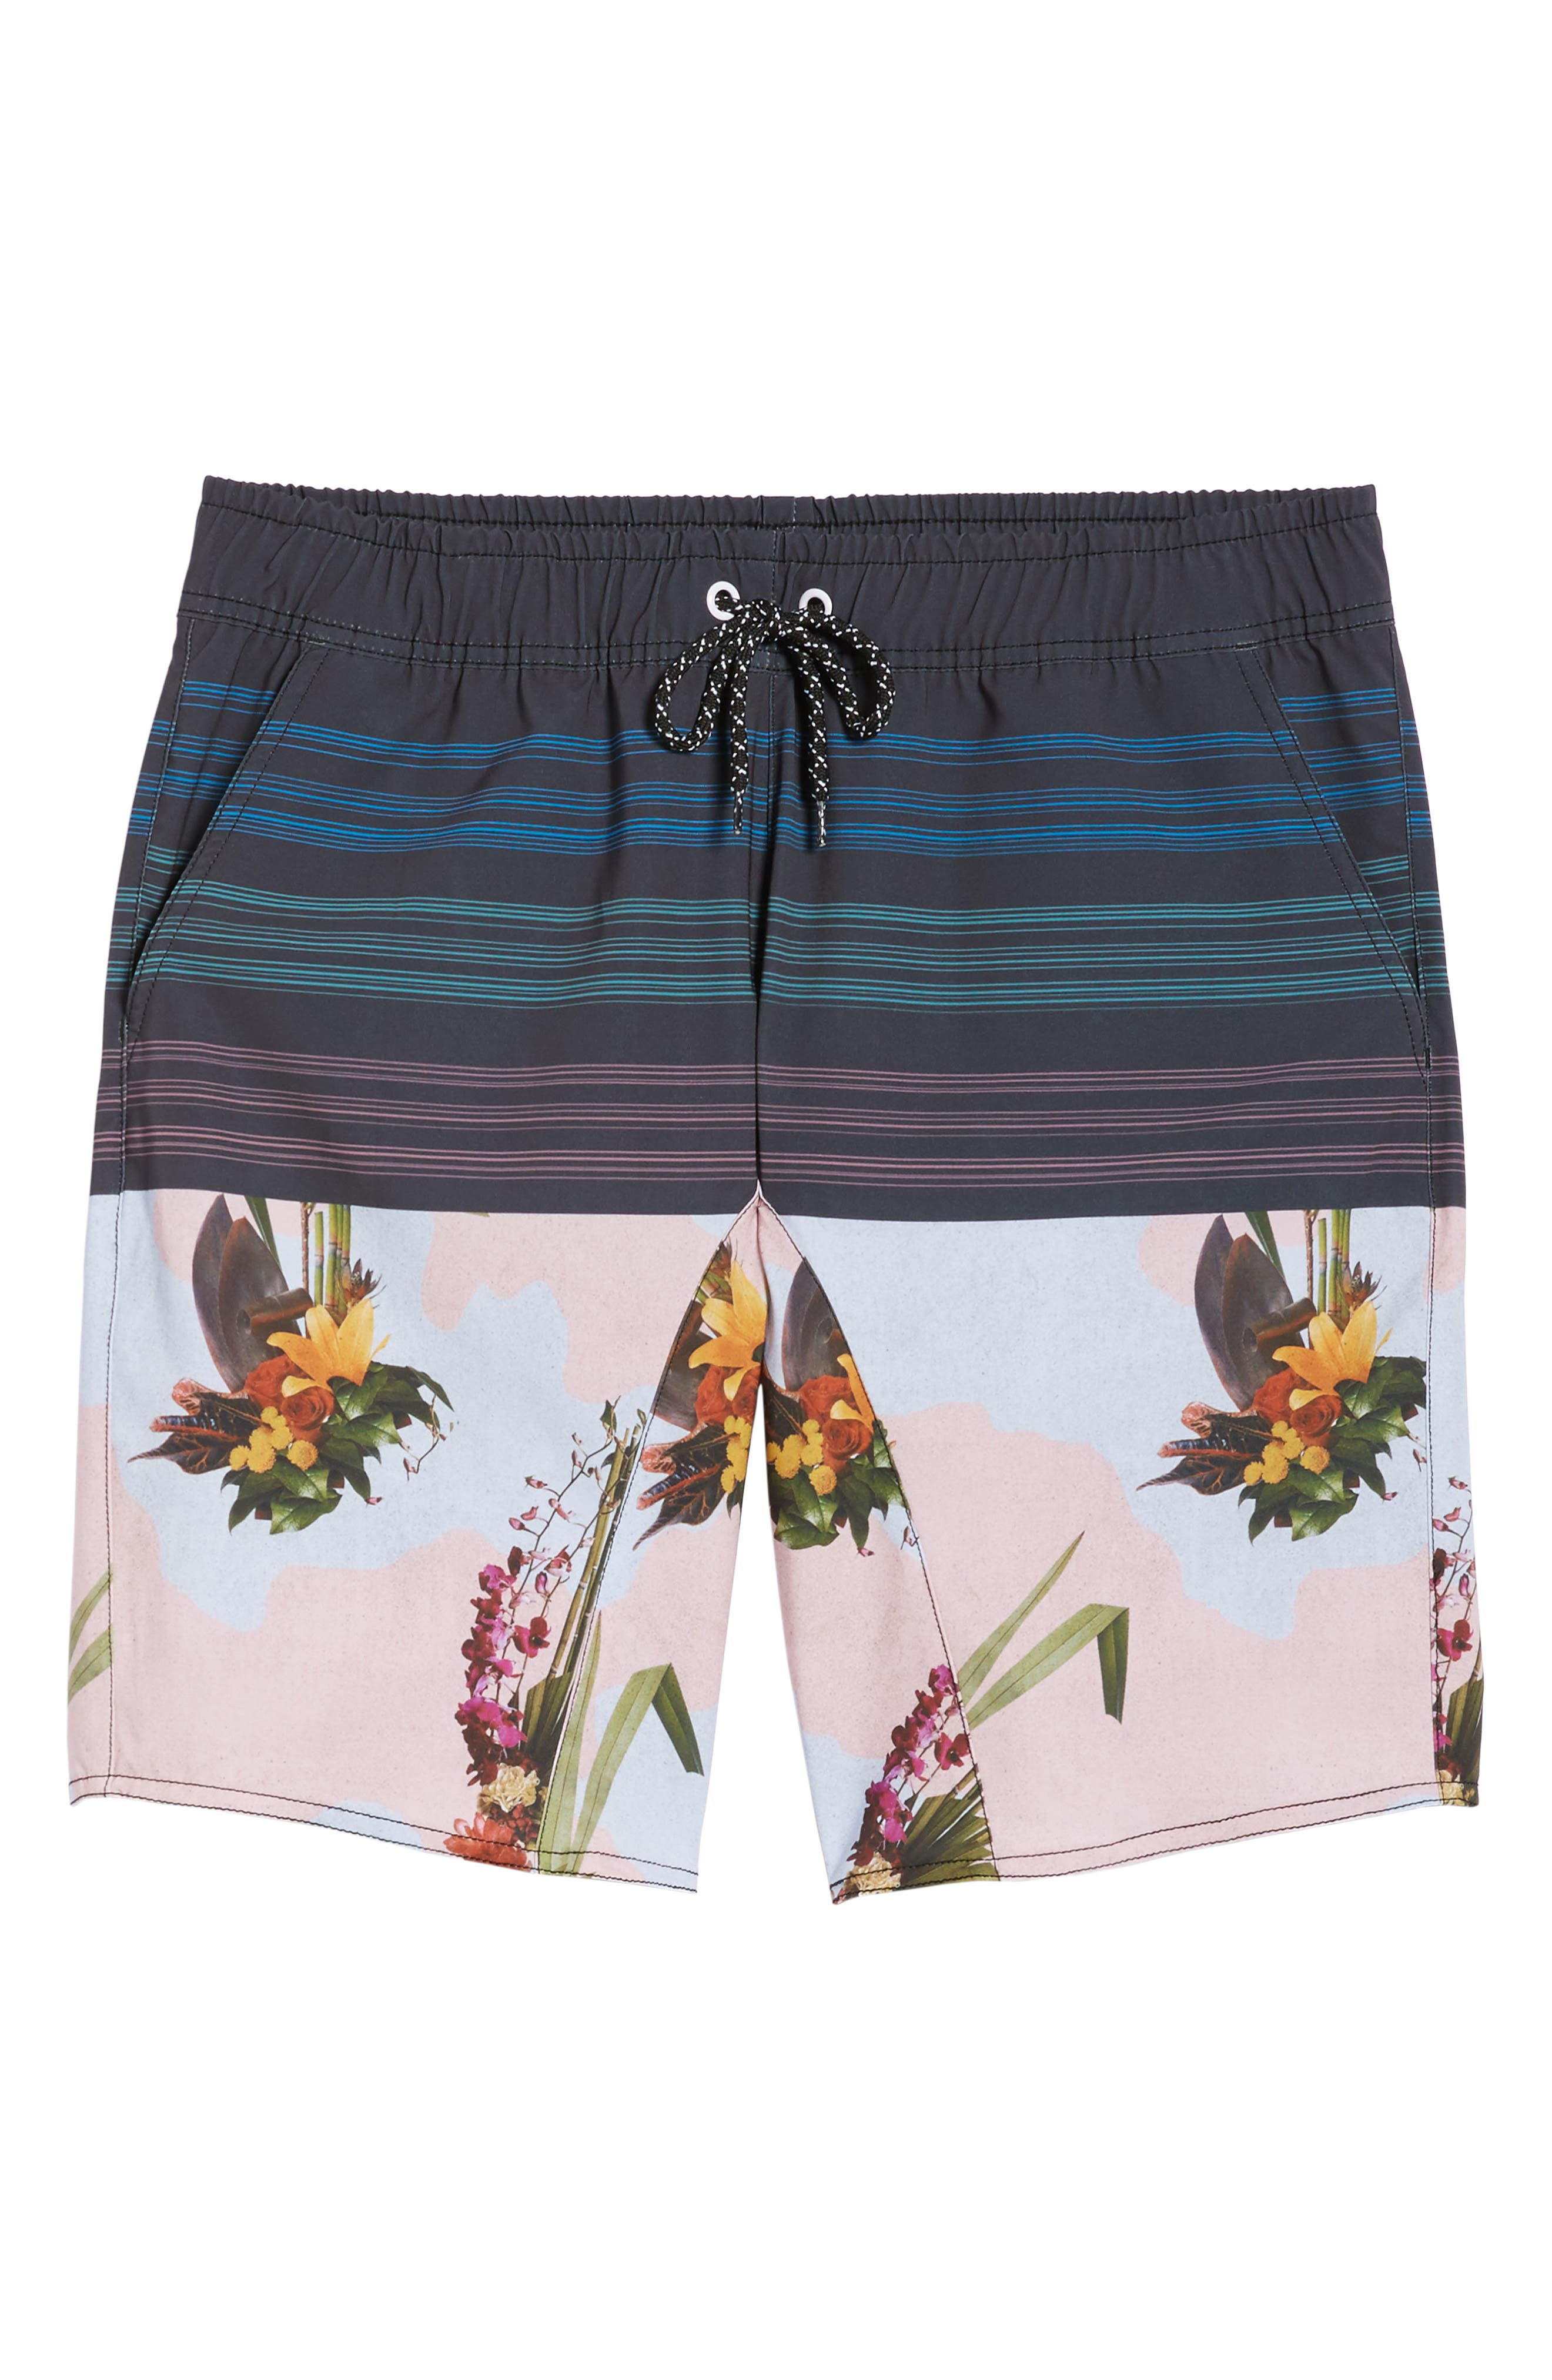 Oasis Swim Shorts,                             Alternate thumbnail 6, color,                             001